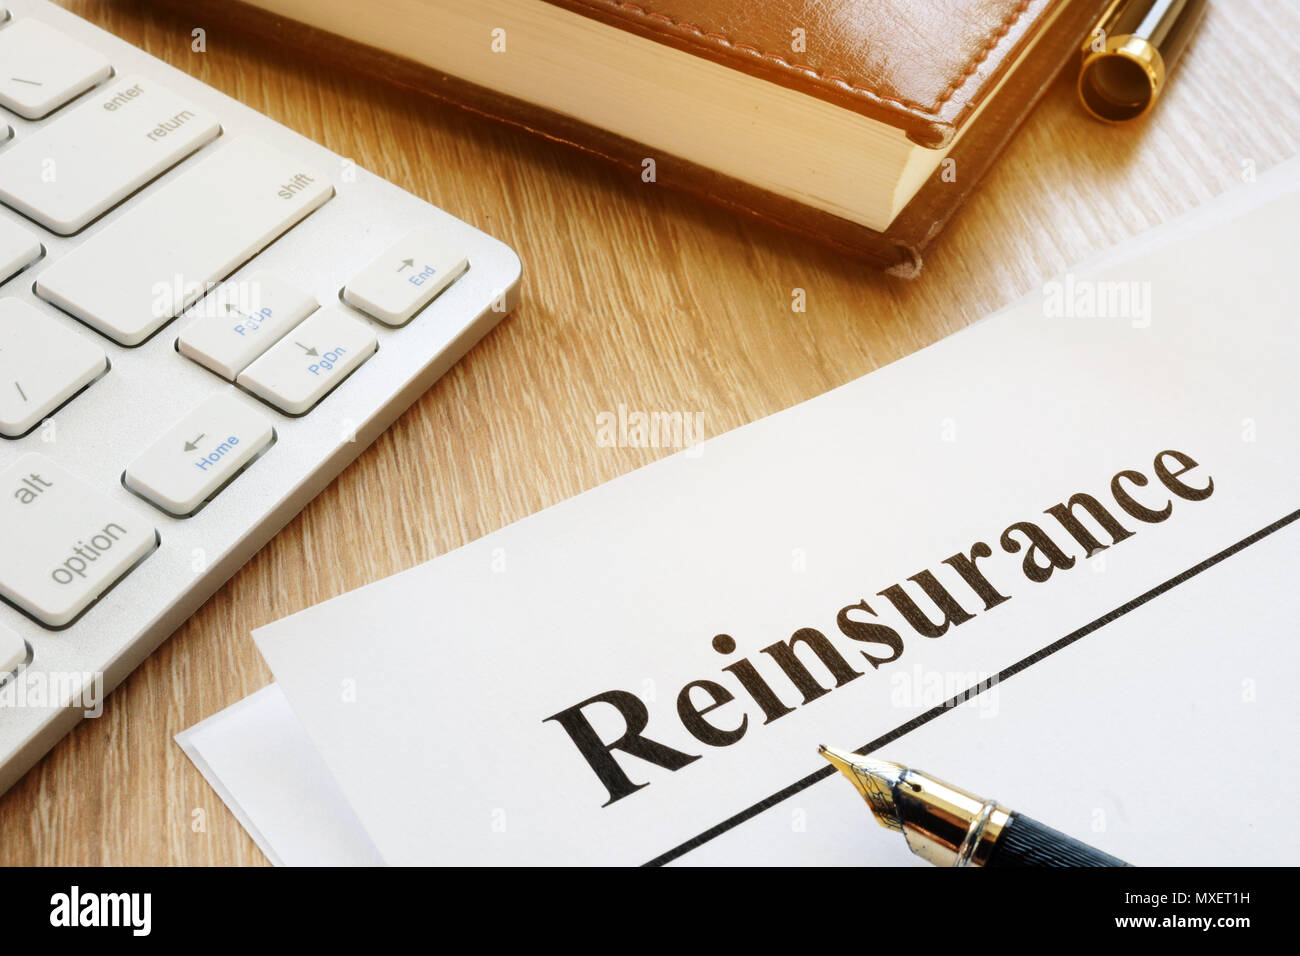 Documents with title reinsurance on a desk. - Stock Image